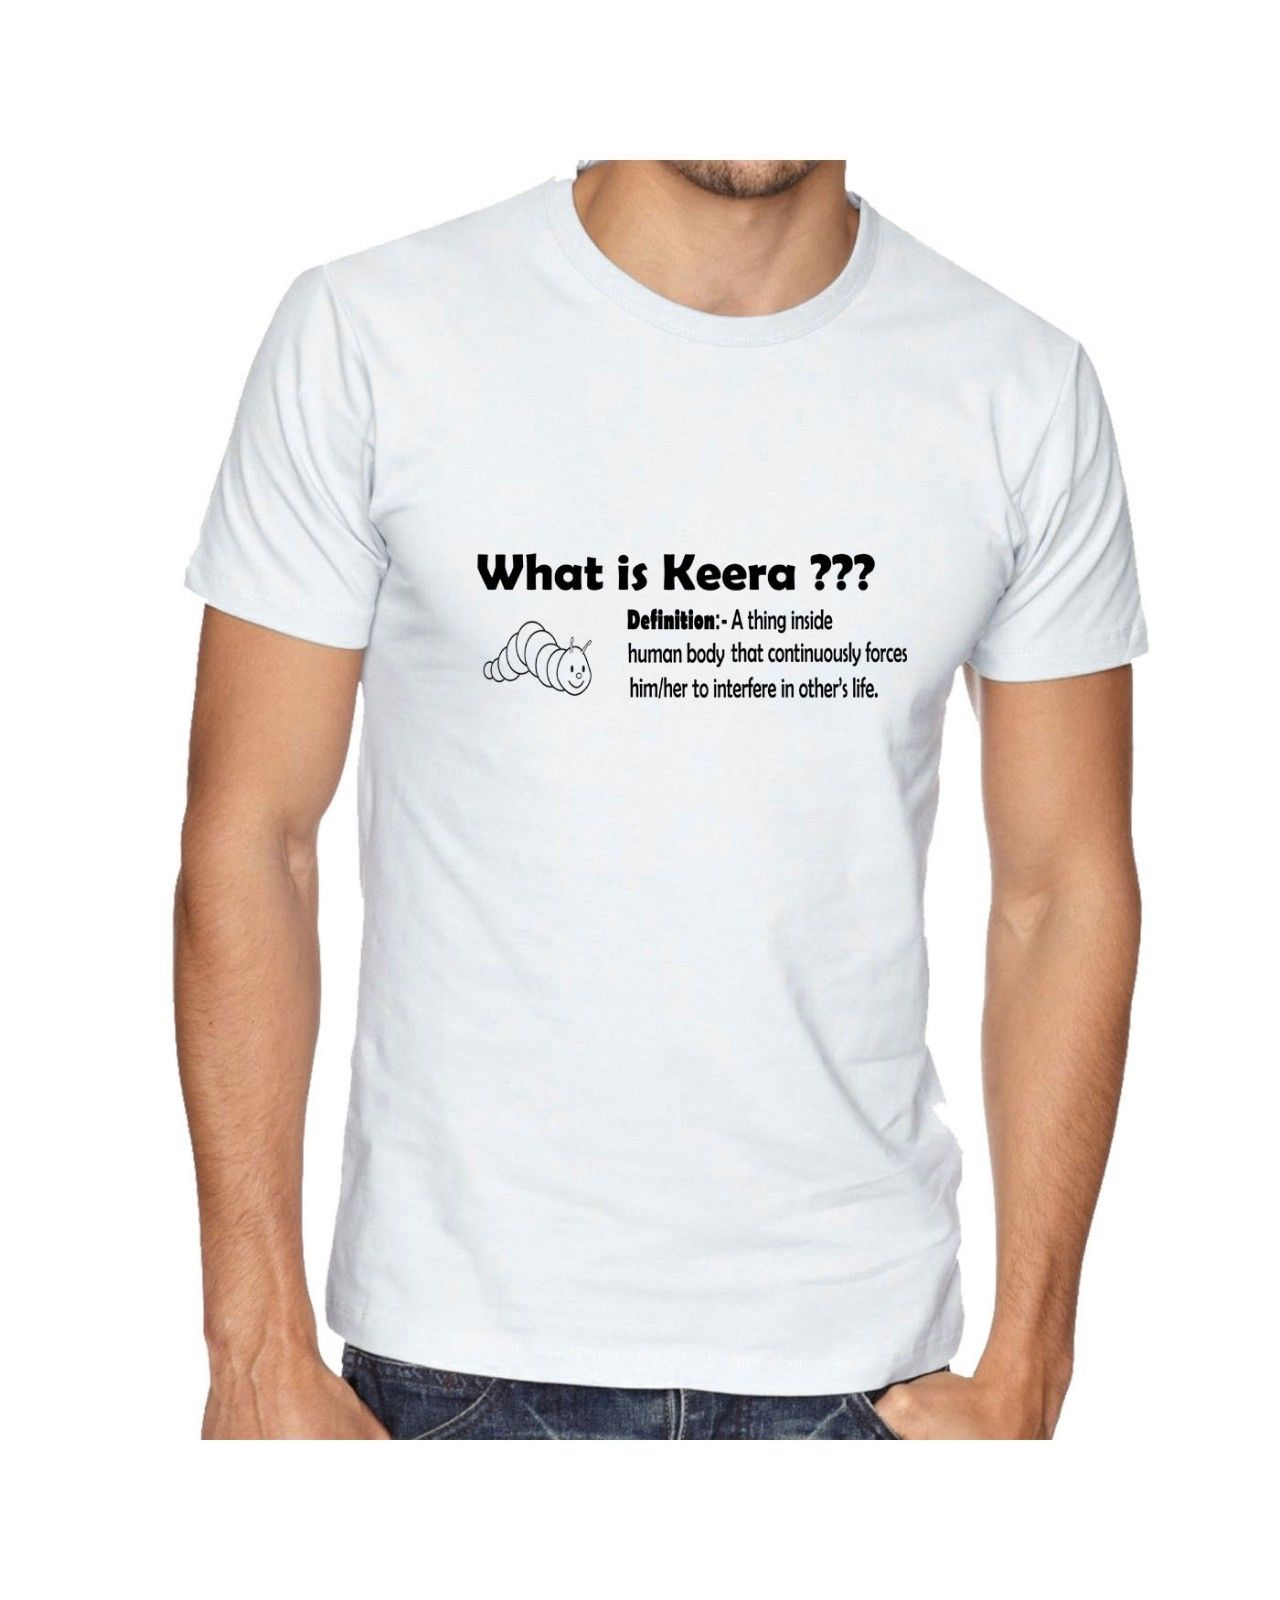 a3f62346ee Detail Feedback Questions about What is Keera? Funny caterpillar T shirt  joke slogan taunt gift desi urdu tee on Aliexpress.com | alibaba group